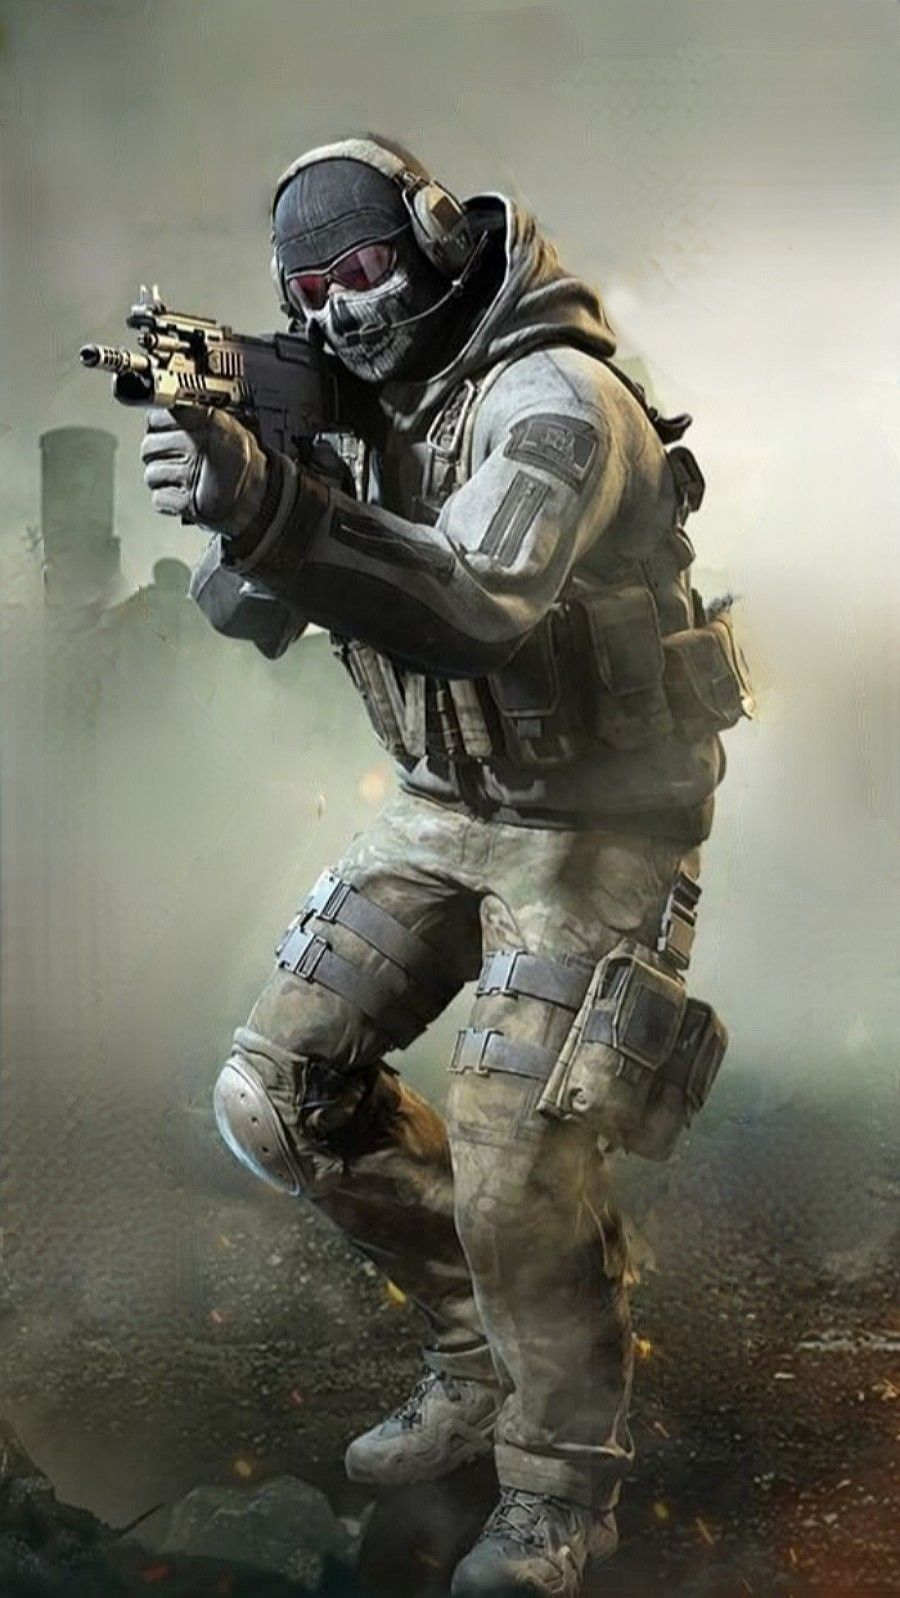 Pin By Tono S On صور جنود عسكريين Call Of Duty Call Of Duty Wallpaper Call Of Duty Ghosts